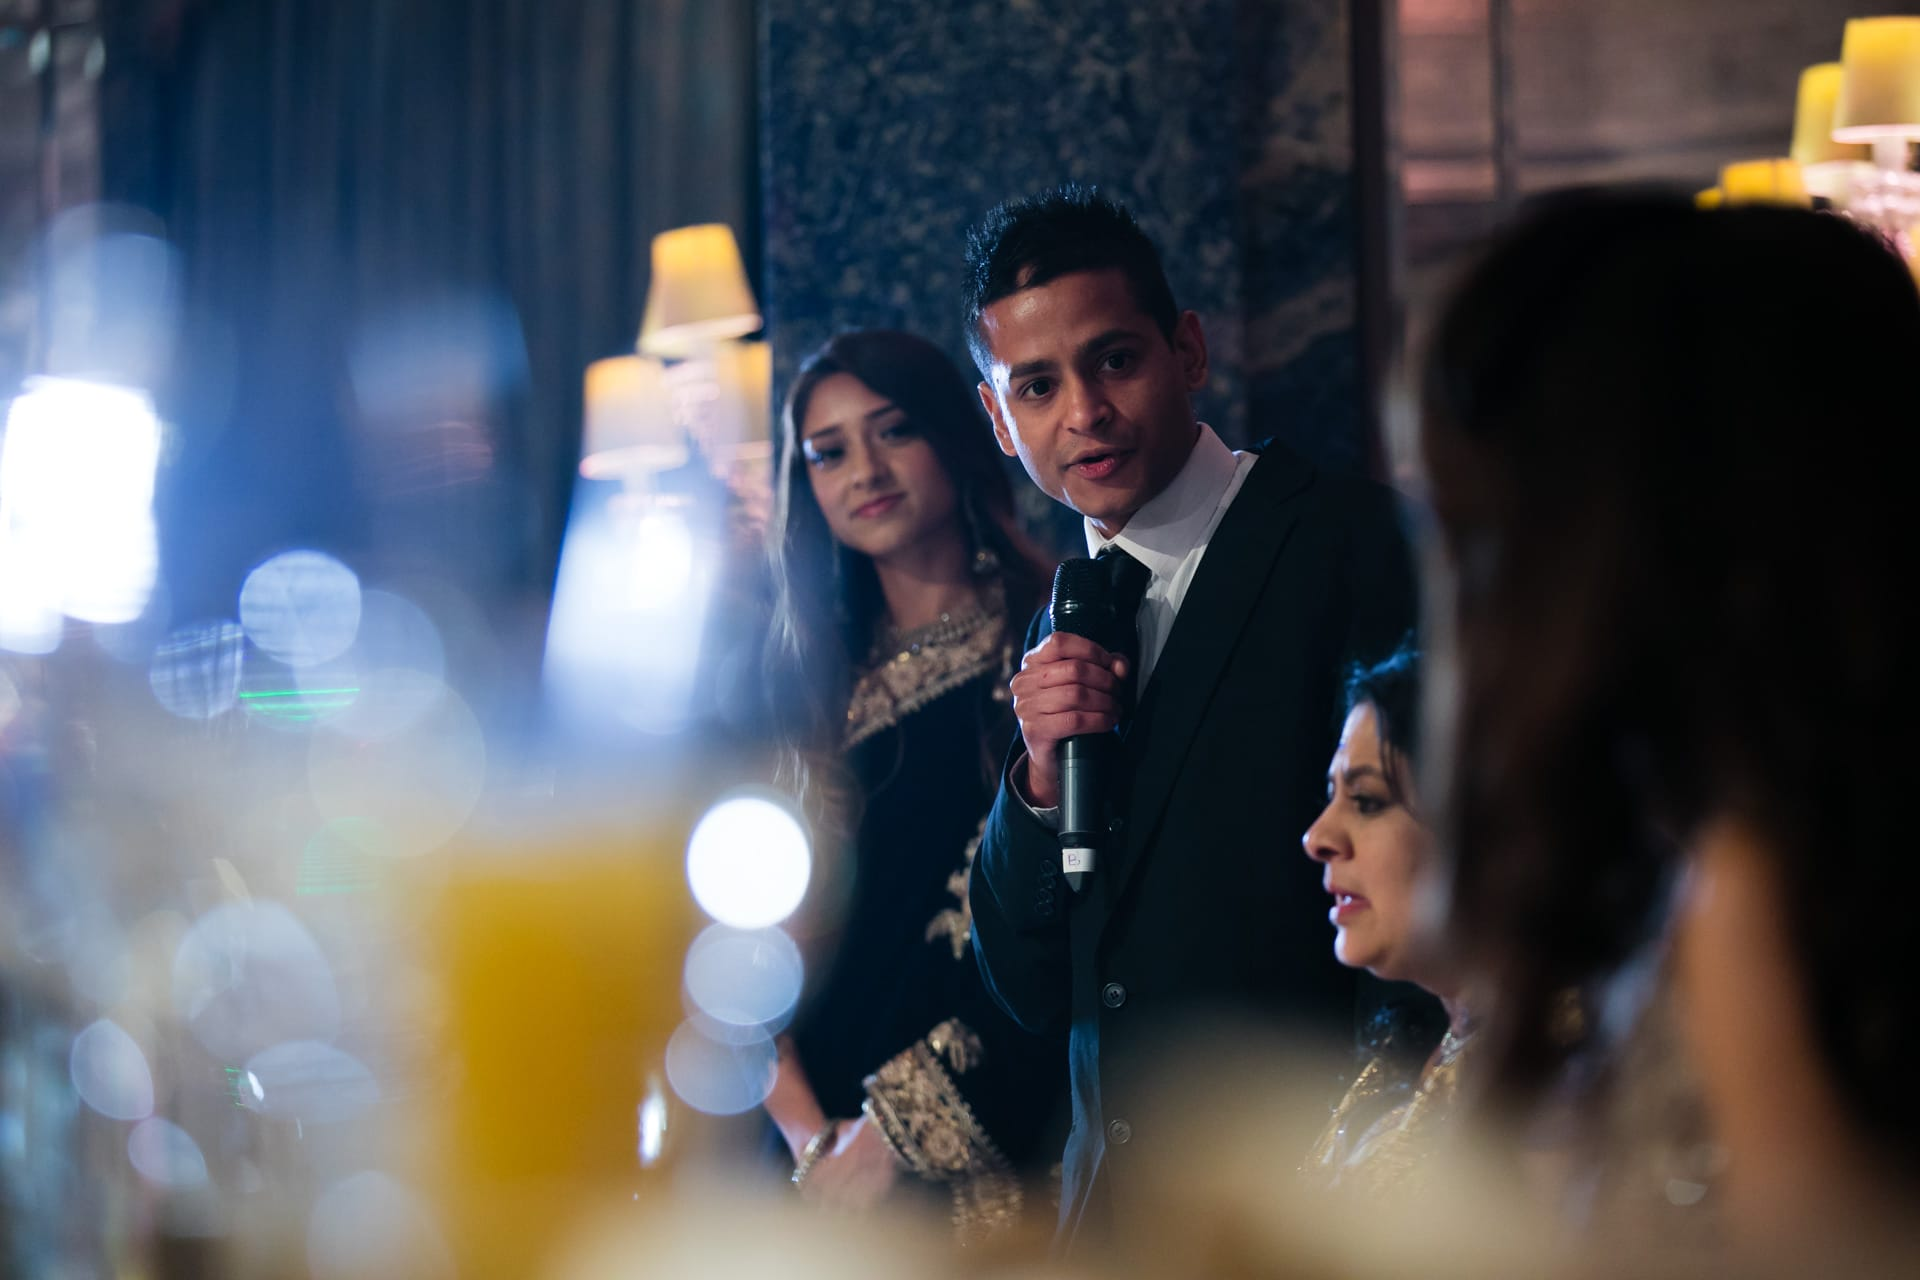 Asian wedding reception party speeches